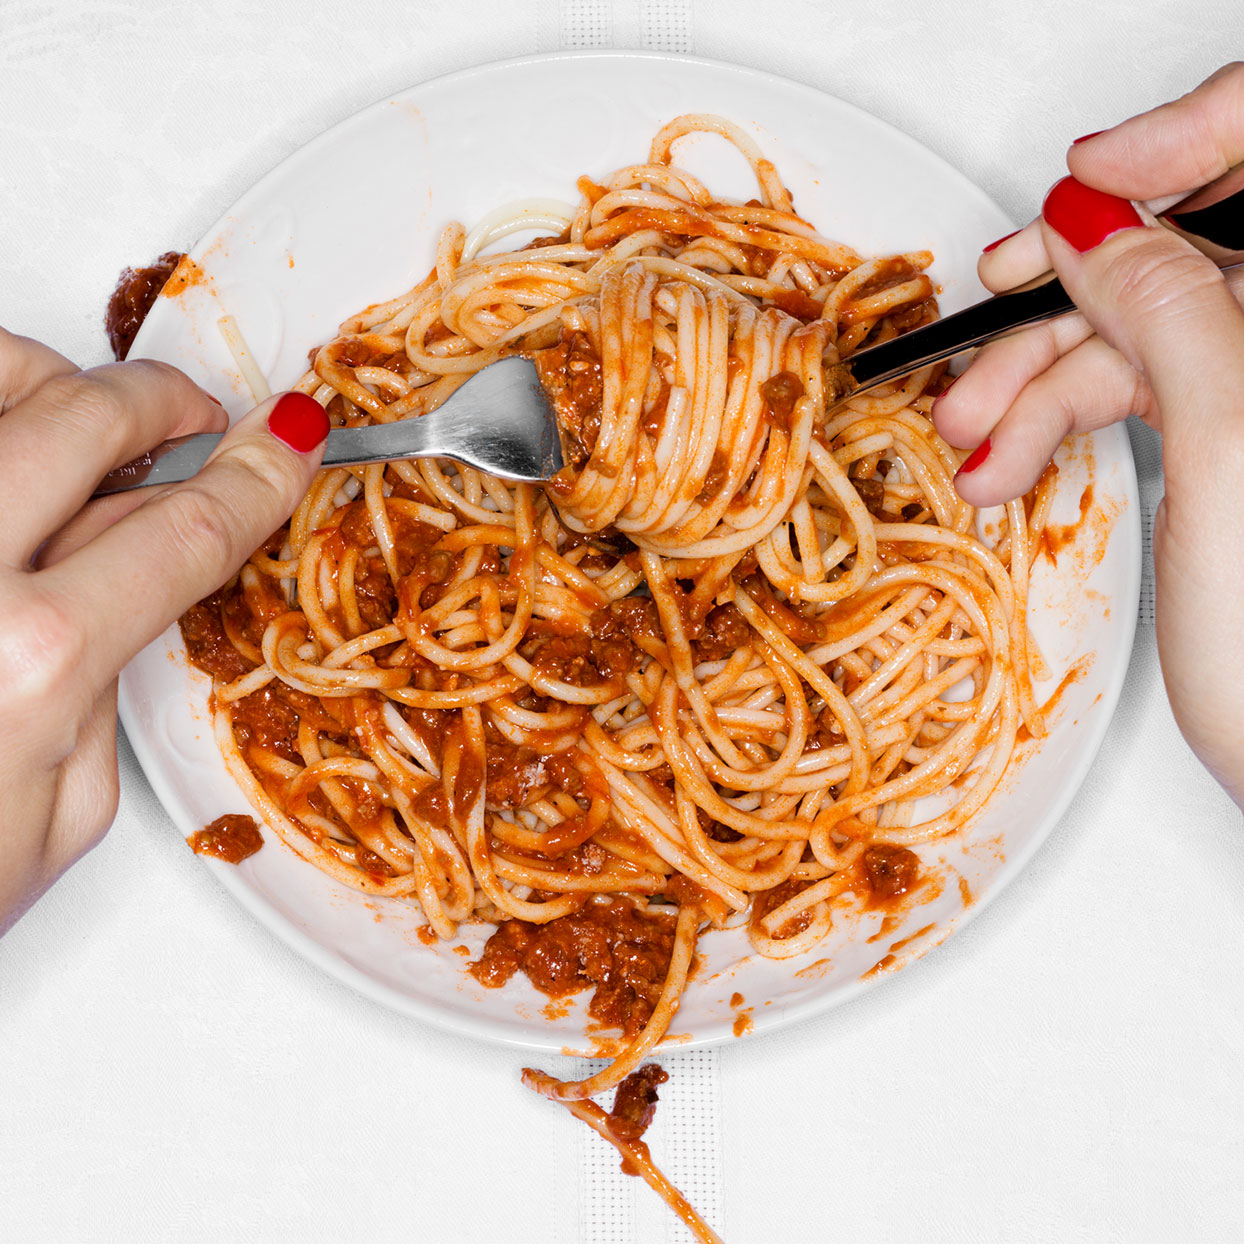 8 Surprising Reasons You're Always Hungry